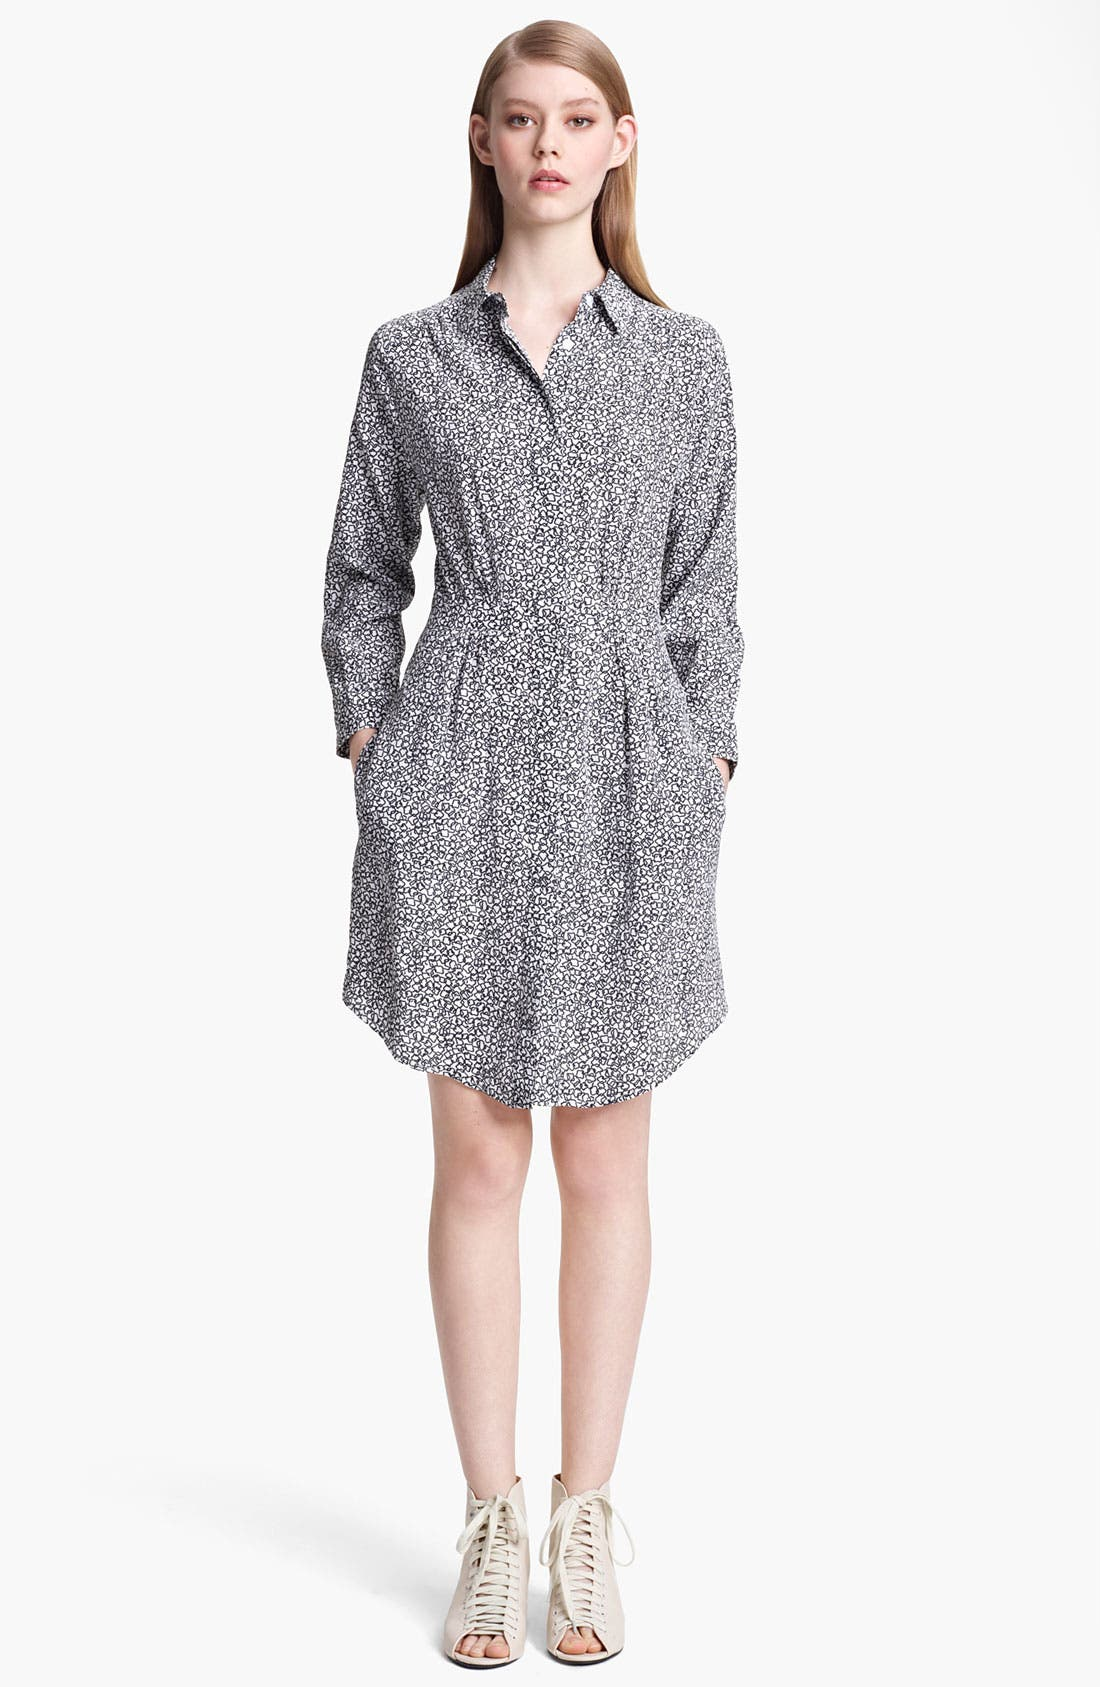 Main Image - Band of Outsiders Print Crêpe de Chine Shirtdress